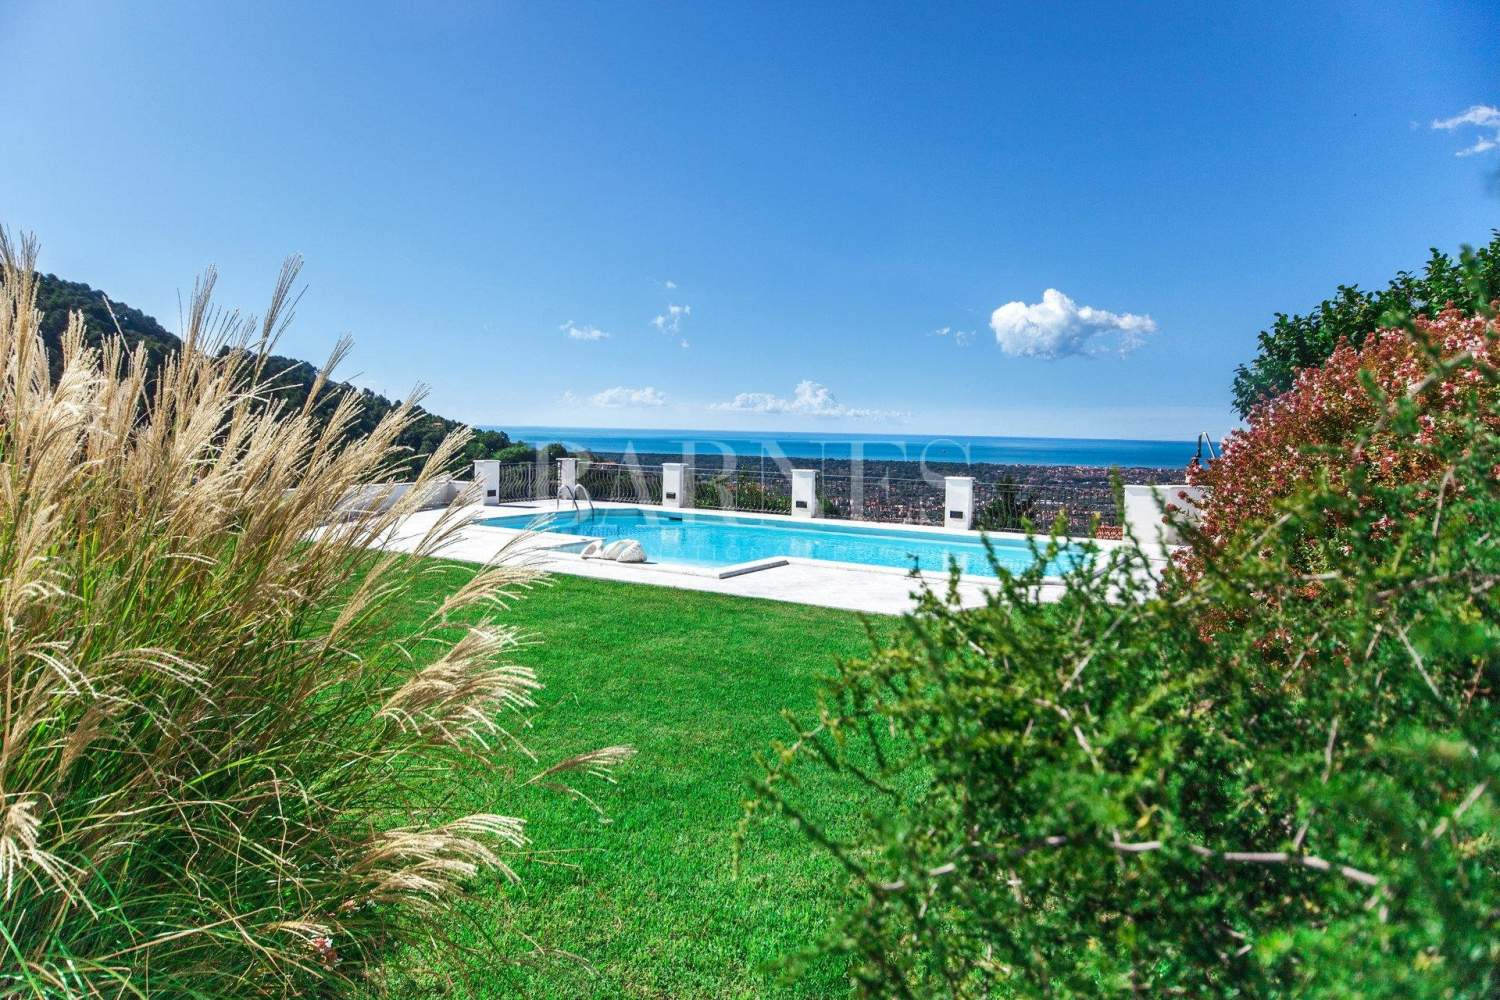 Villa with panoramic views on the sea and mountains, swimming pool picture 3